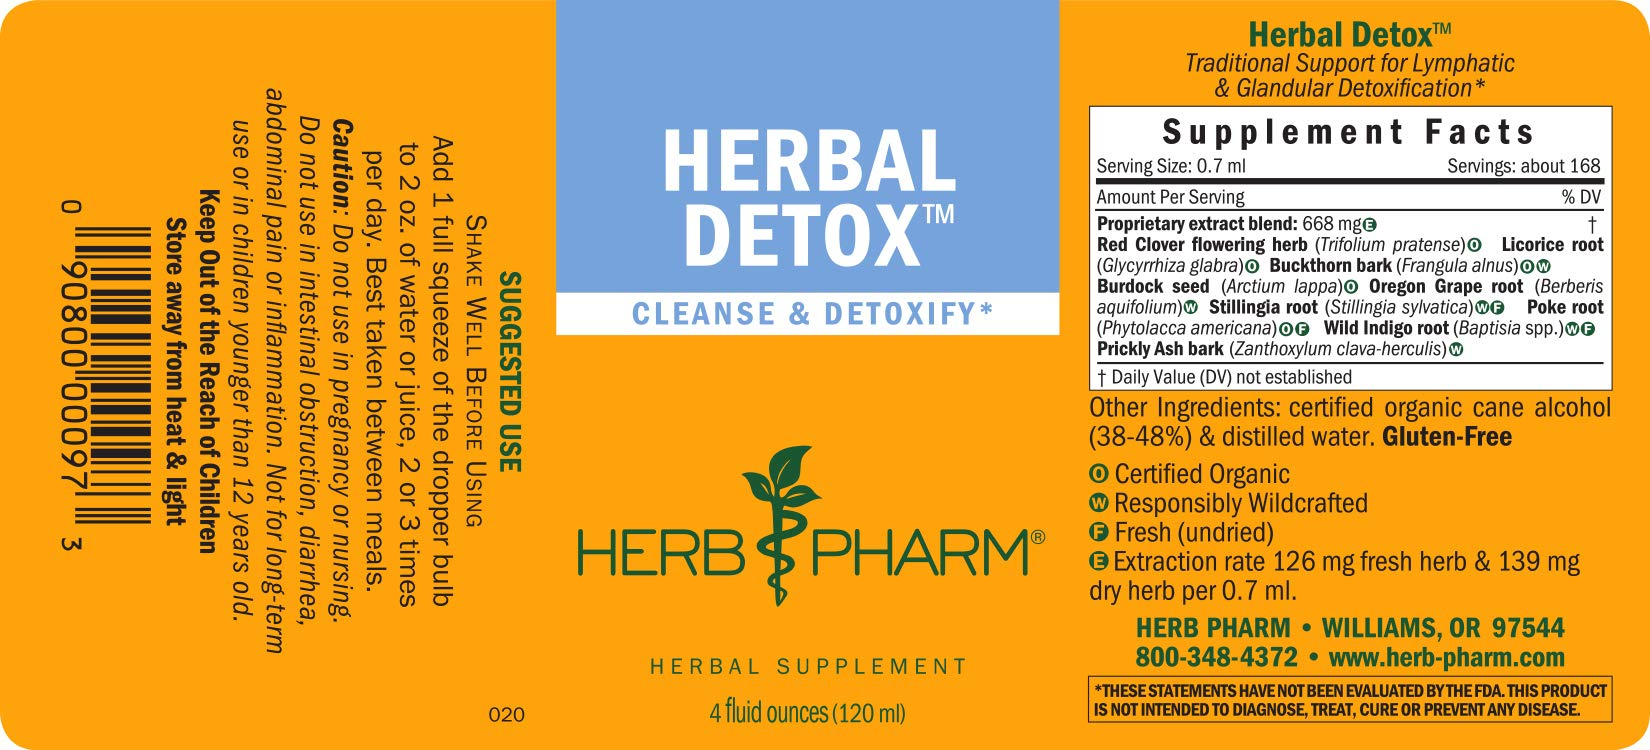 Herb Pharm Liquid Herbal Detox Formula for Cleansing and Detoxification - 4 Ounce by Herb Pharm (Image #2)